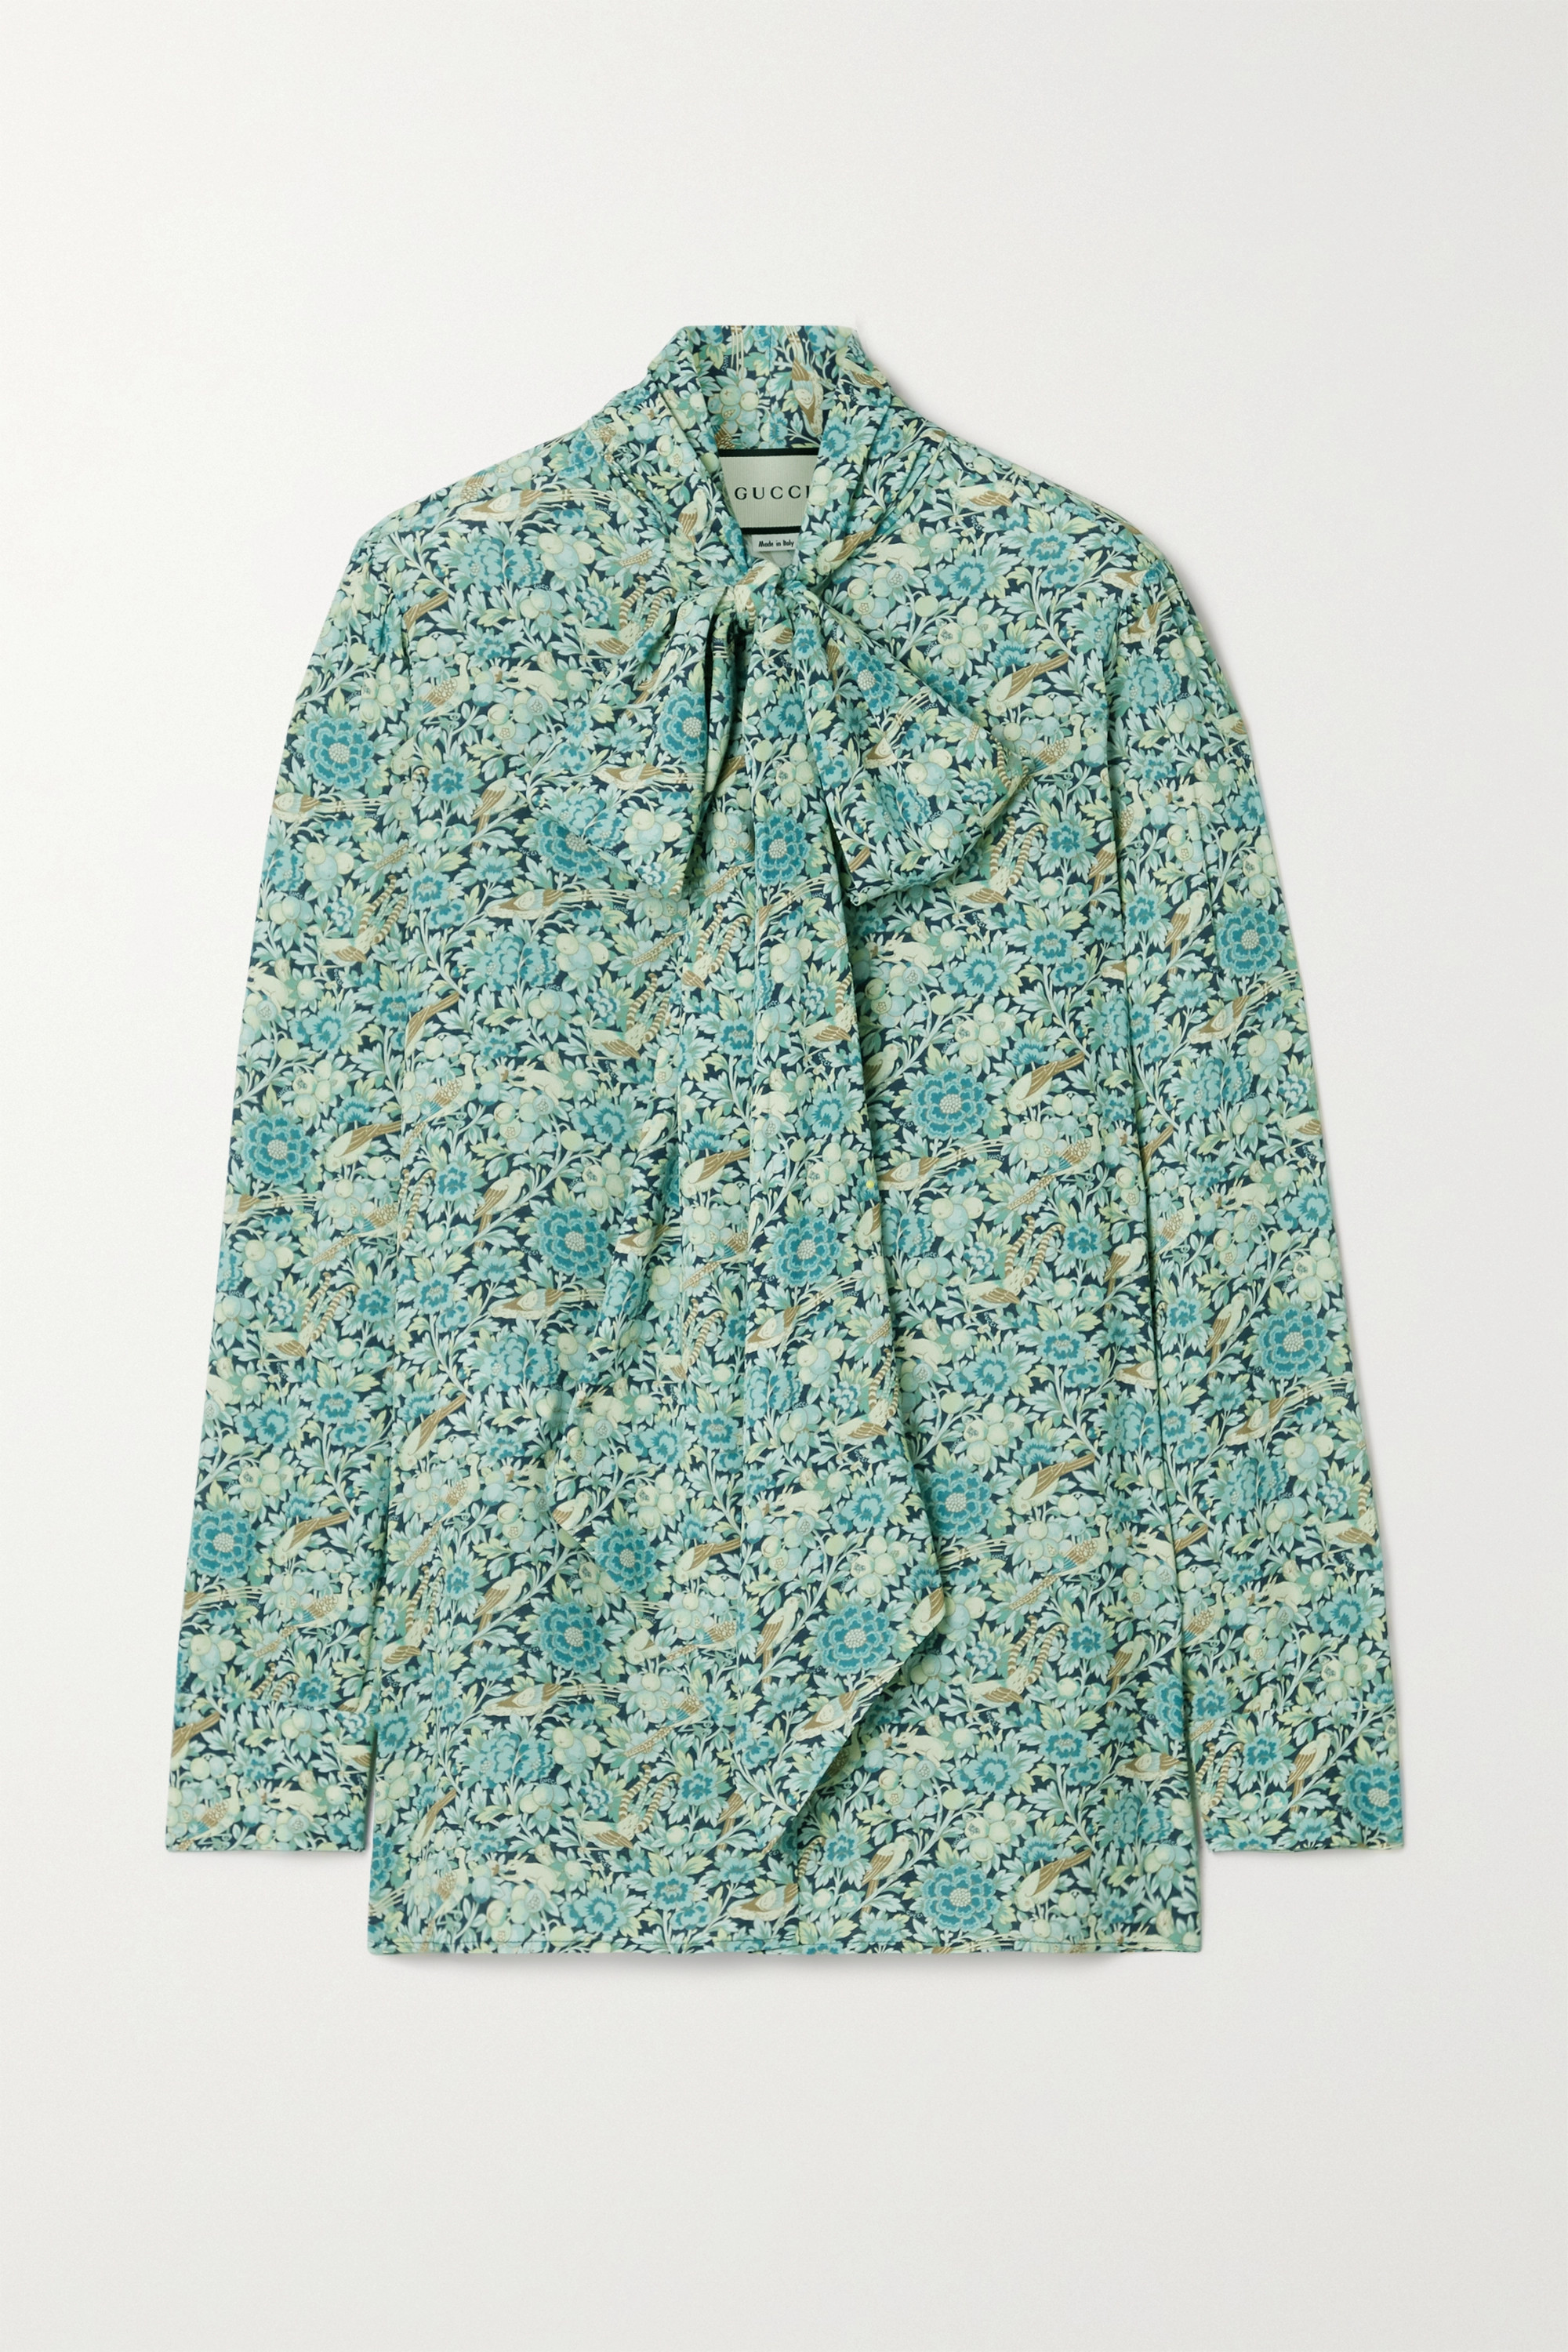 Gucci Pussy-bow floral-print crepe blouse